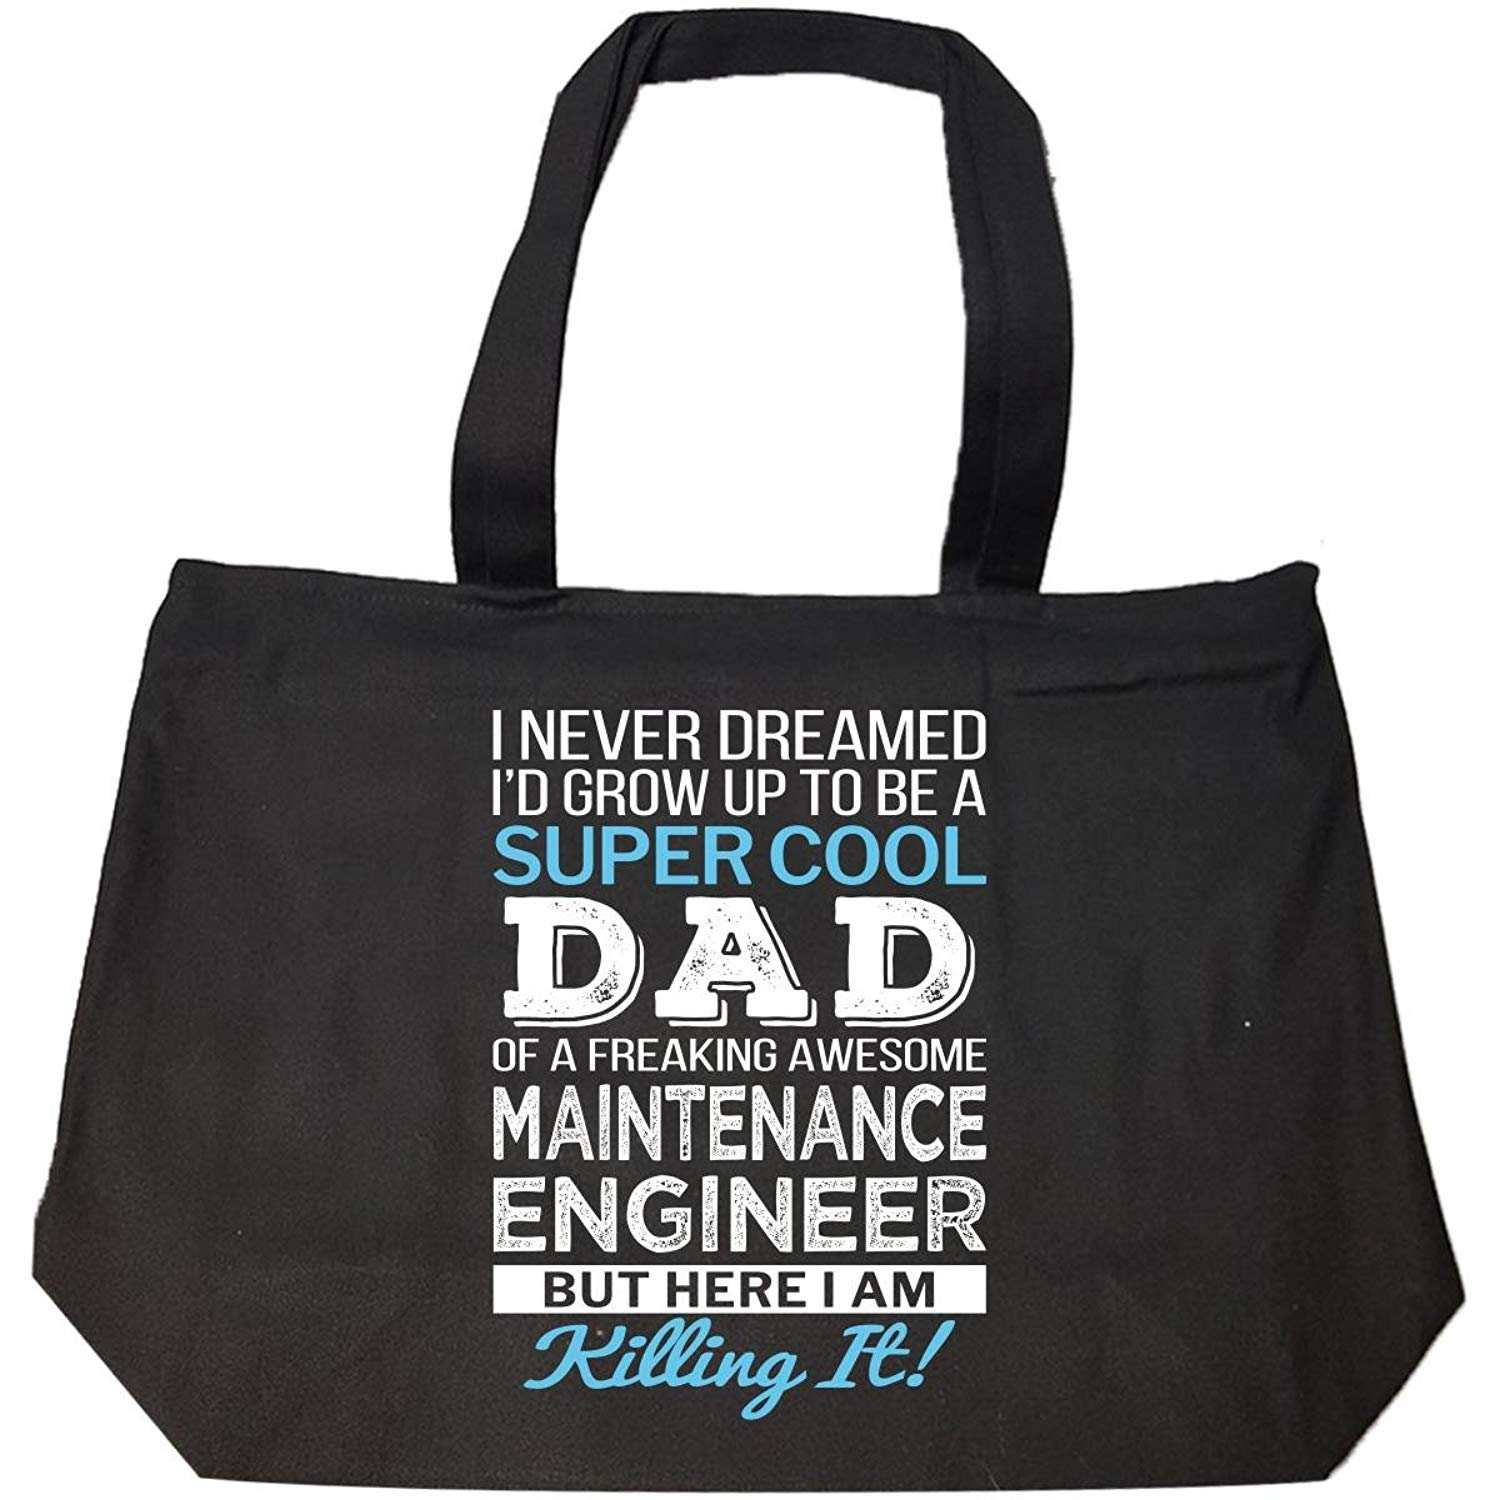 Super Cool Dad Of Awesome Maintenance Engineer Dad Gift - Tote Bag With Zip